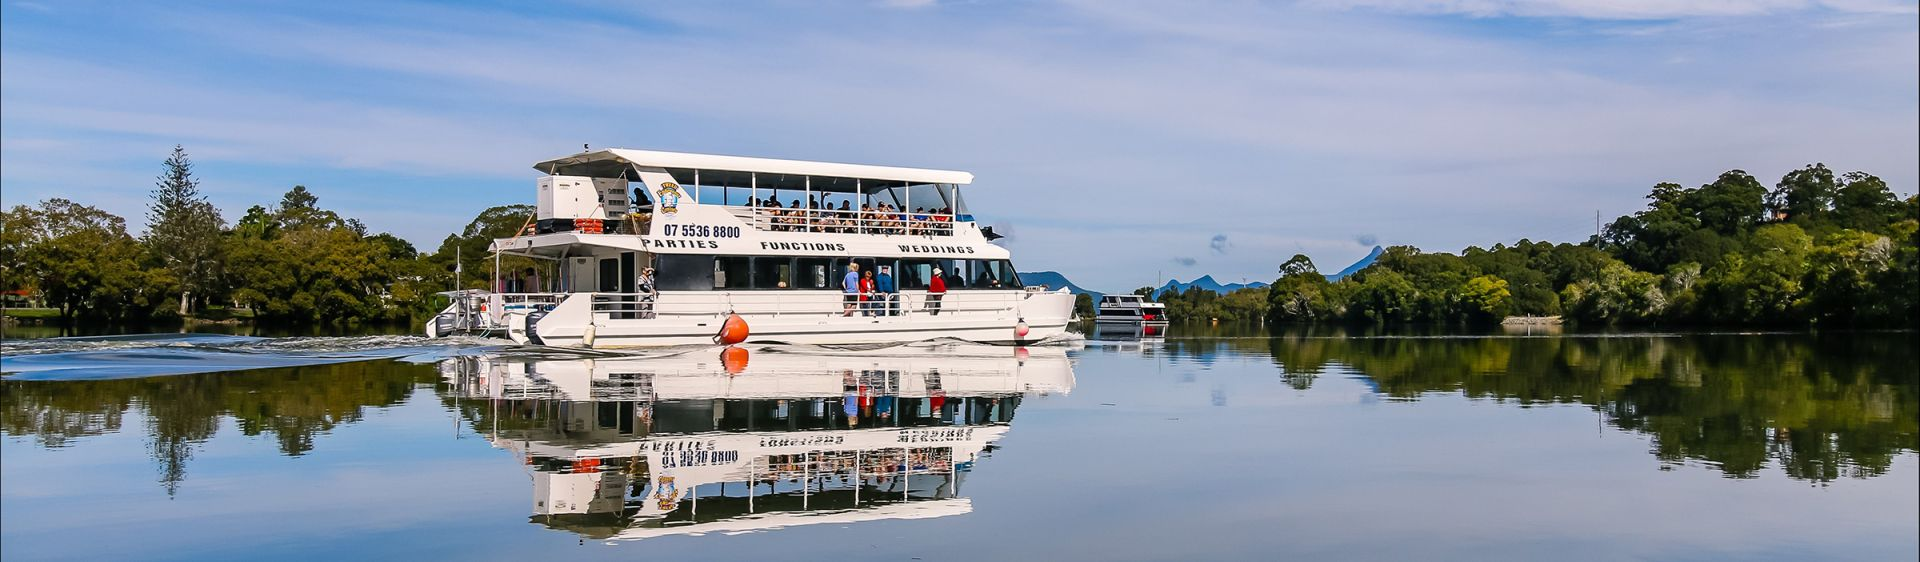 Tweed Endeavour Cruises - Tweed Heads